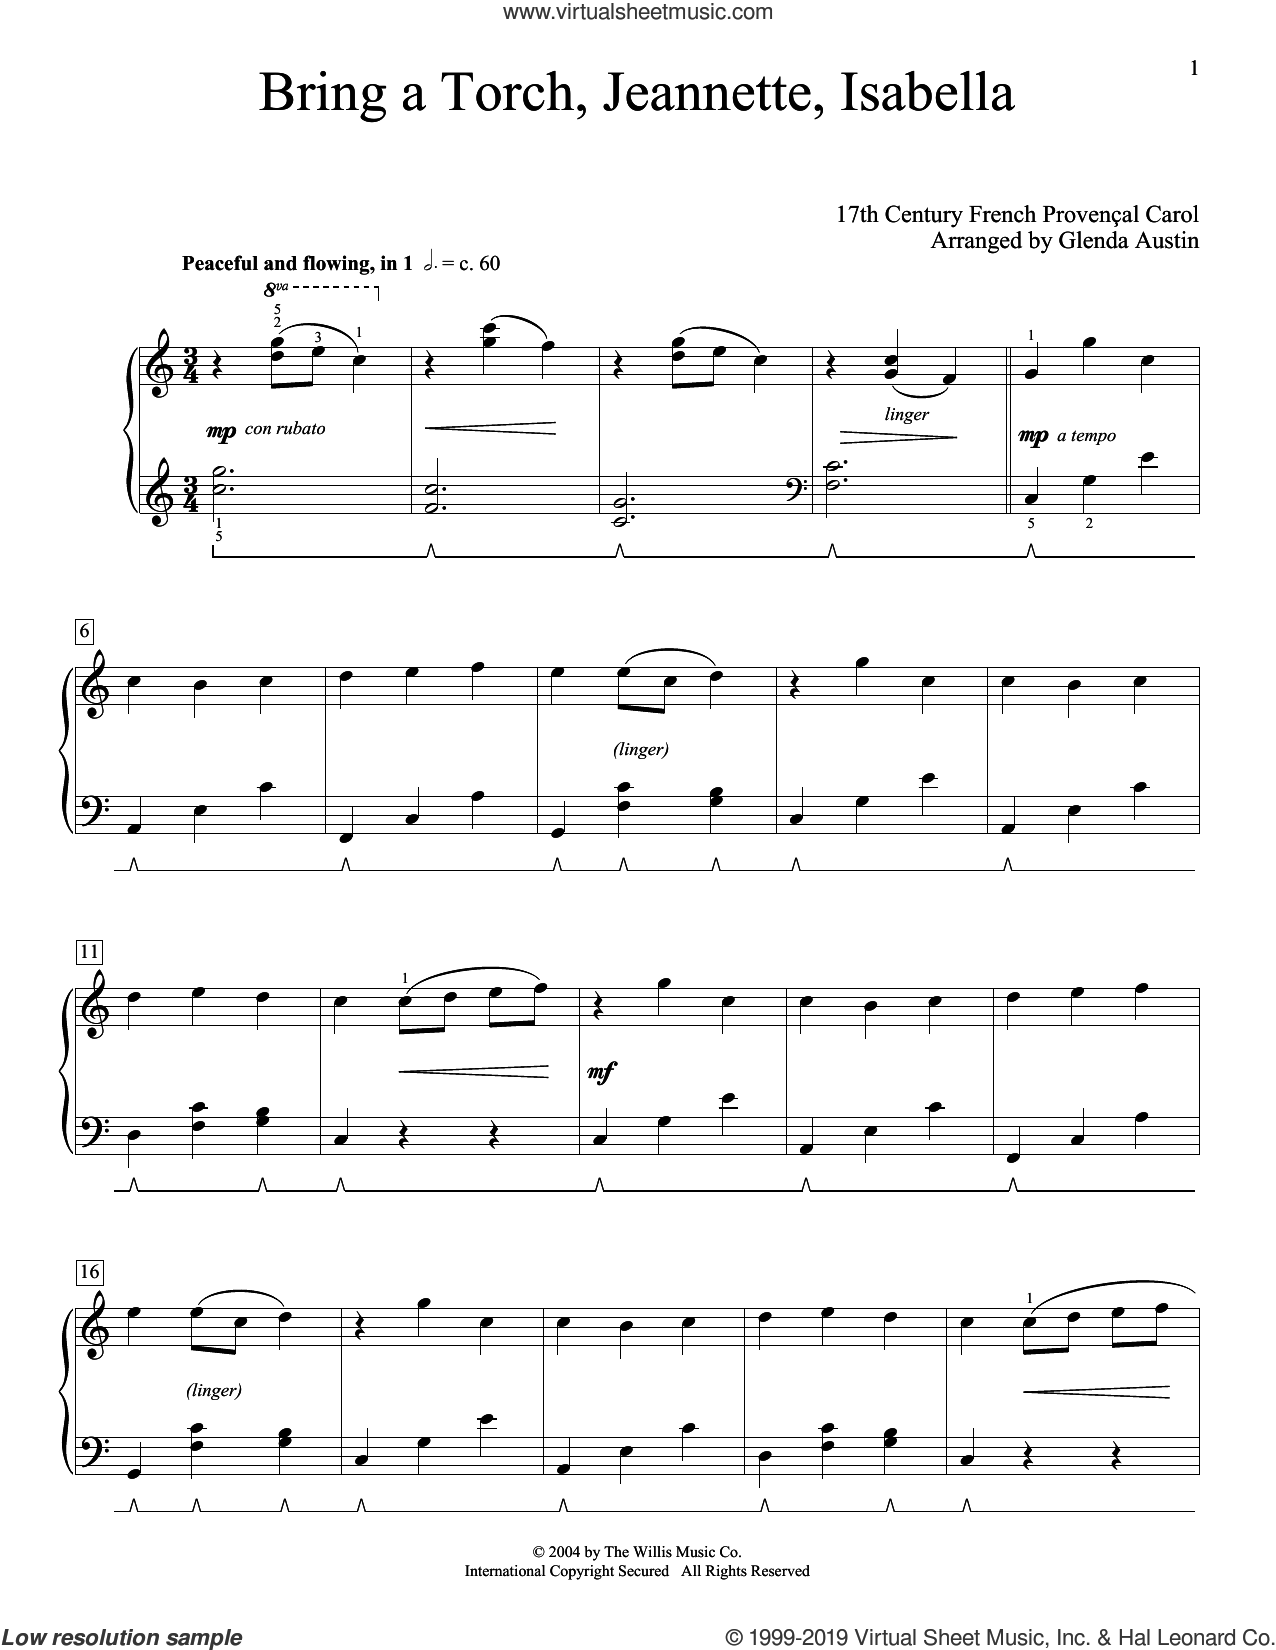 Bring A Torch, Jeannette, Isabella (arr. Glenda Austin) sheet music for piano solo by Anonymous, Glenda Austin and Miscellaneous, intermediate skill level